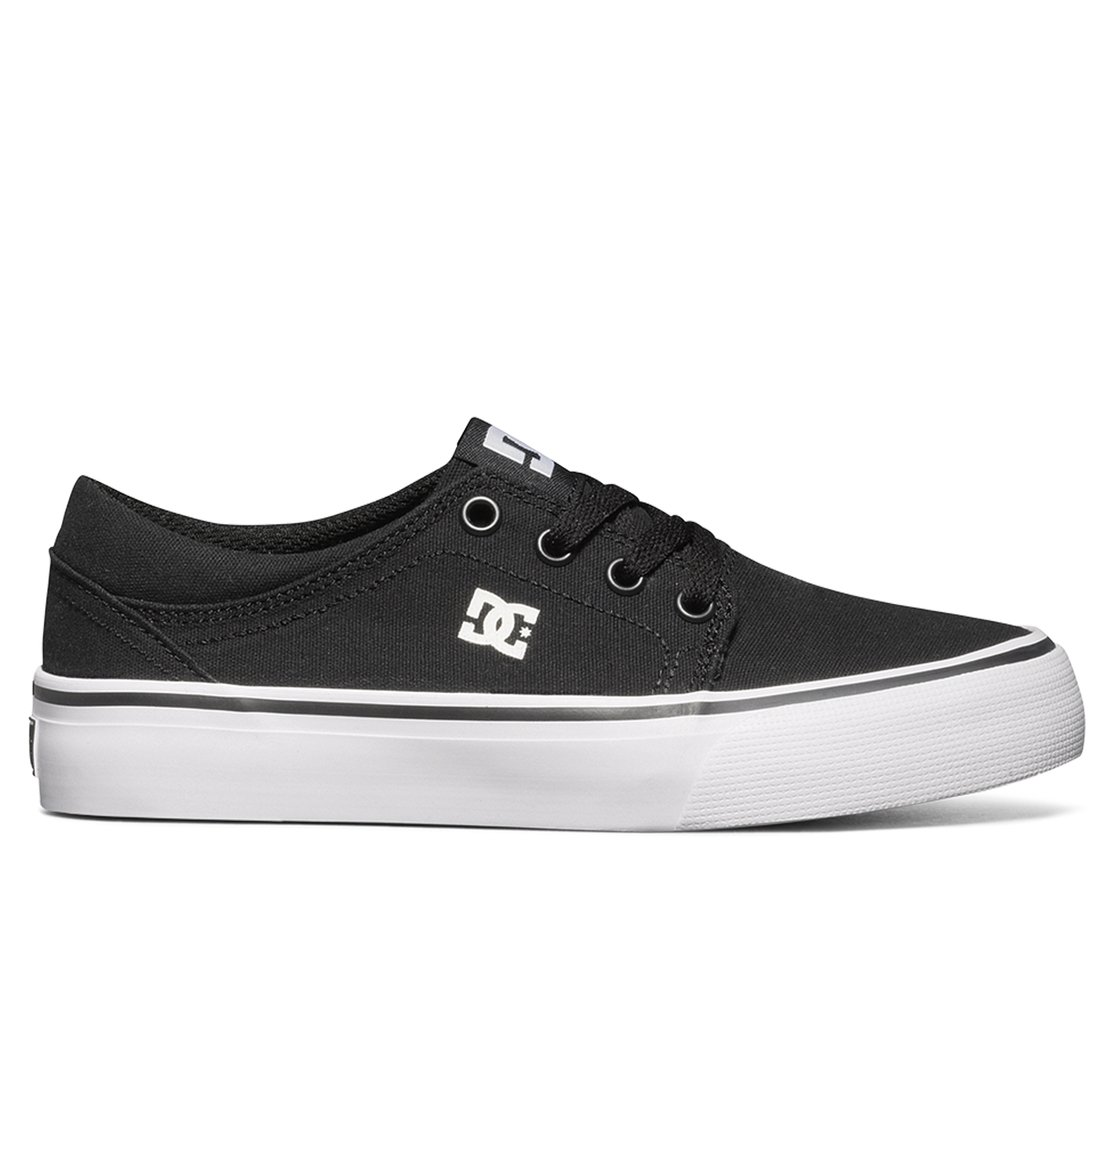 Trase TX - Dcshoes������ ���� Trase TX �� DC Shoes ��� ��������� � ������� �� ��������� ����� 2015�. ��������������: ����� � ���������, ������������� ��������� ��� �������, ����������������� �����������.<br>